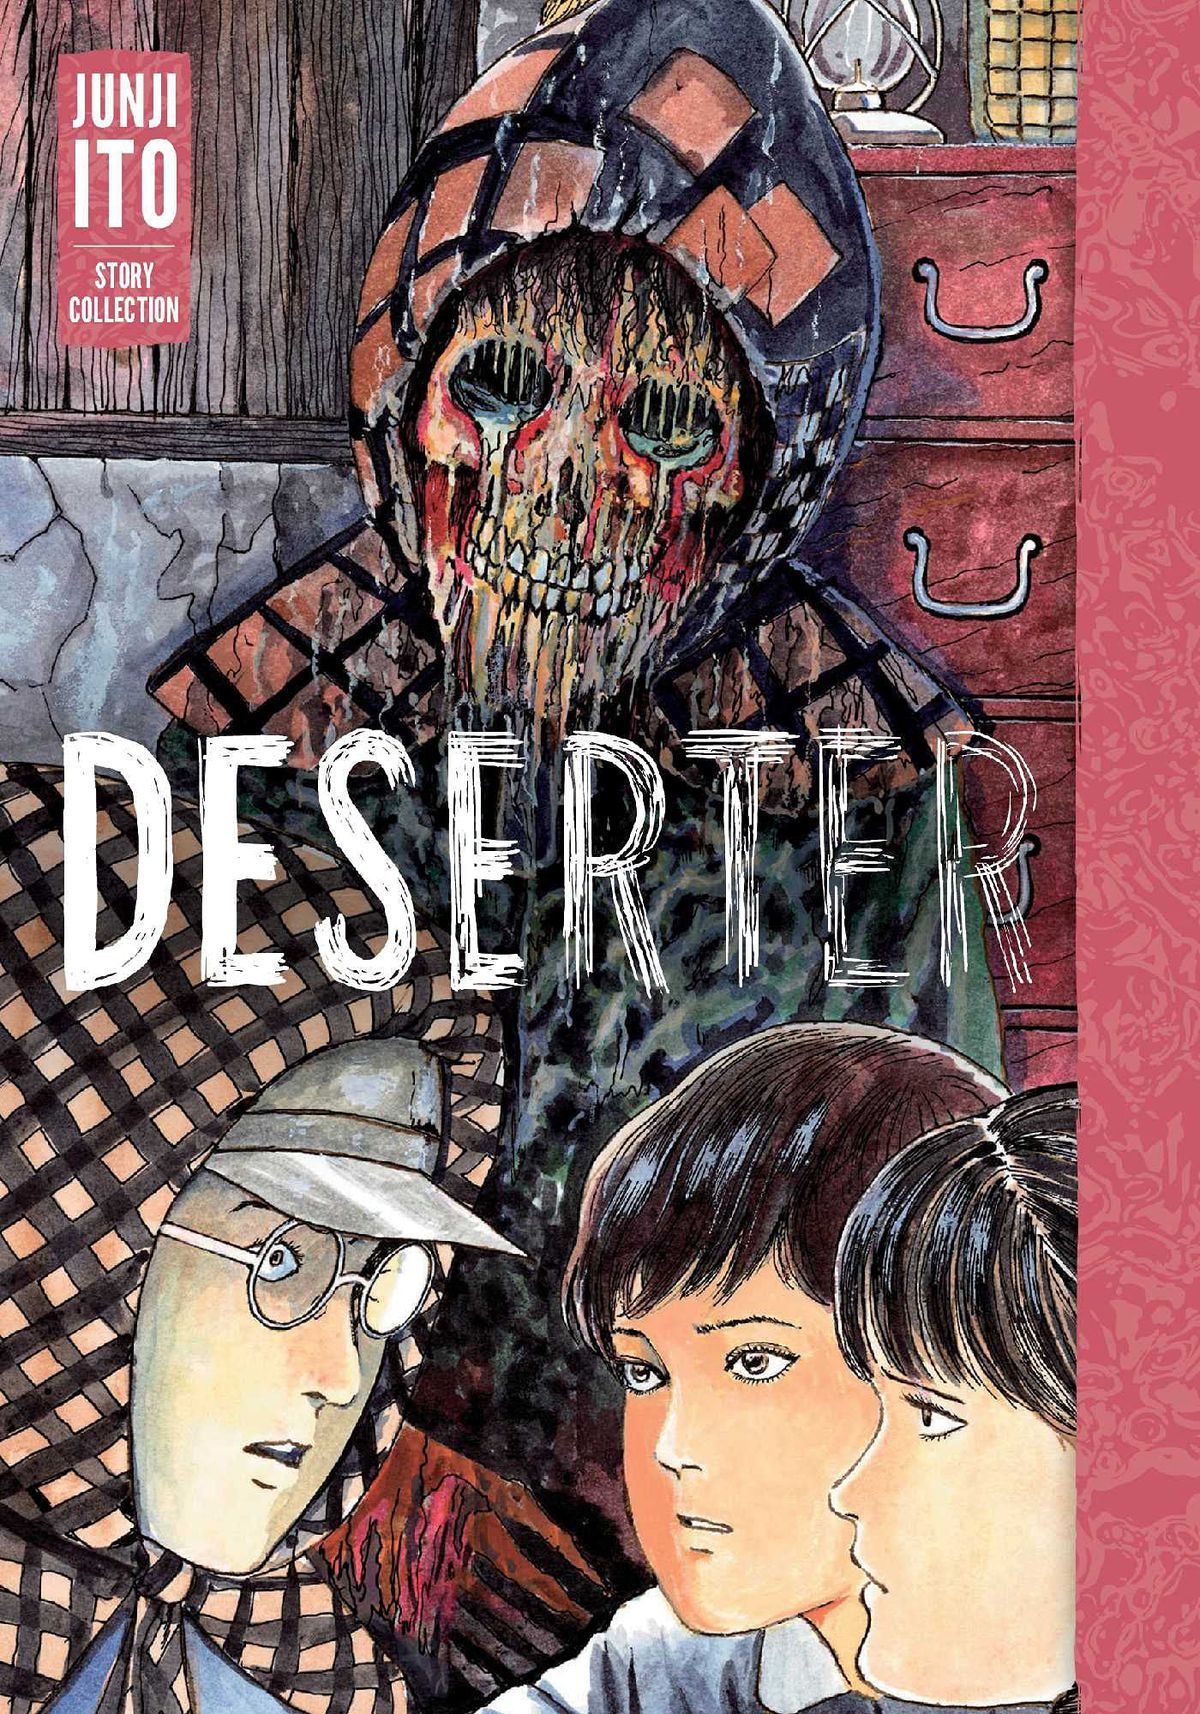 A mummified corpse on the cover of Deserter (2021).